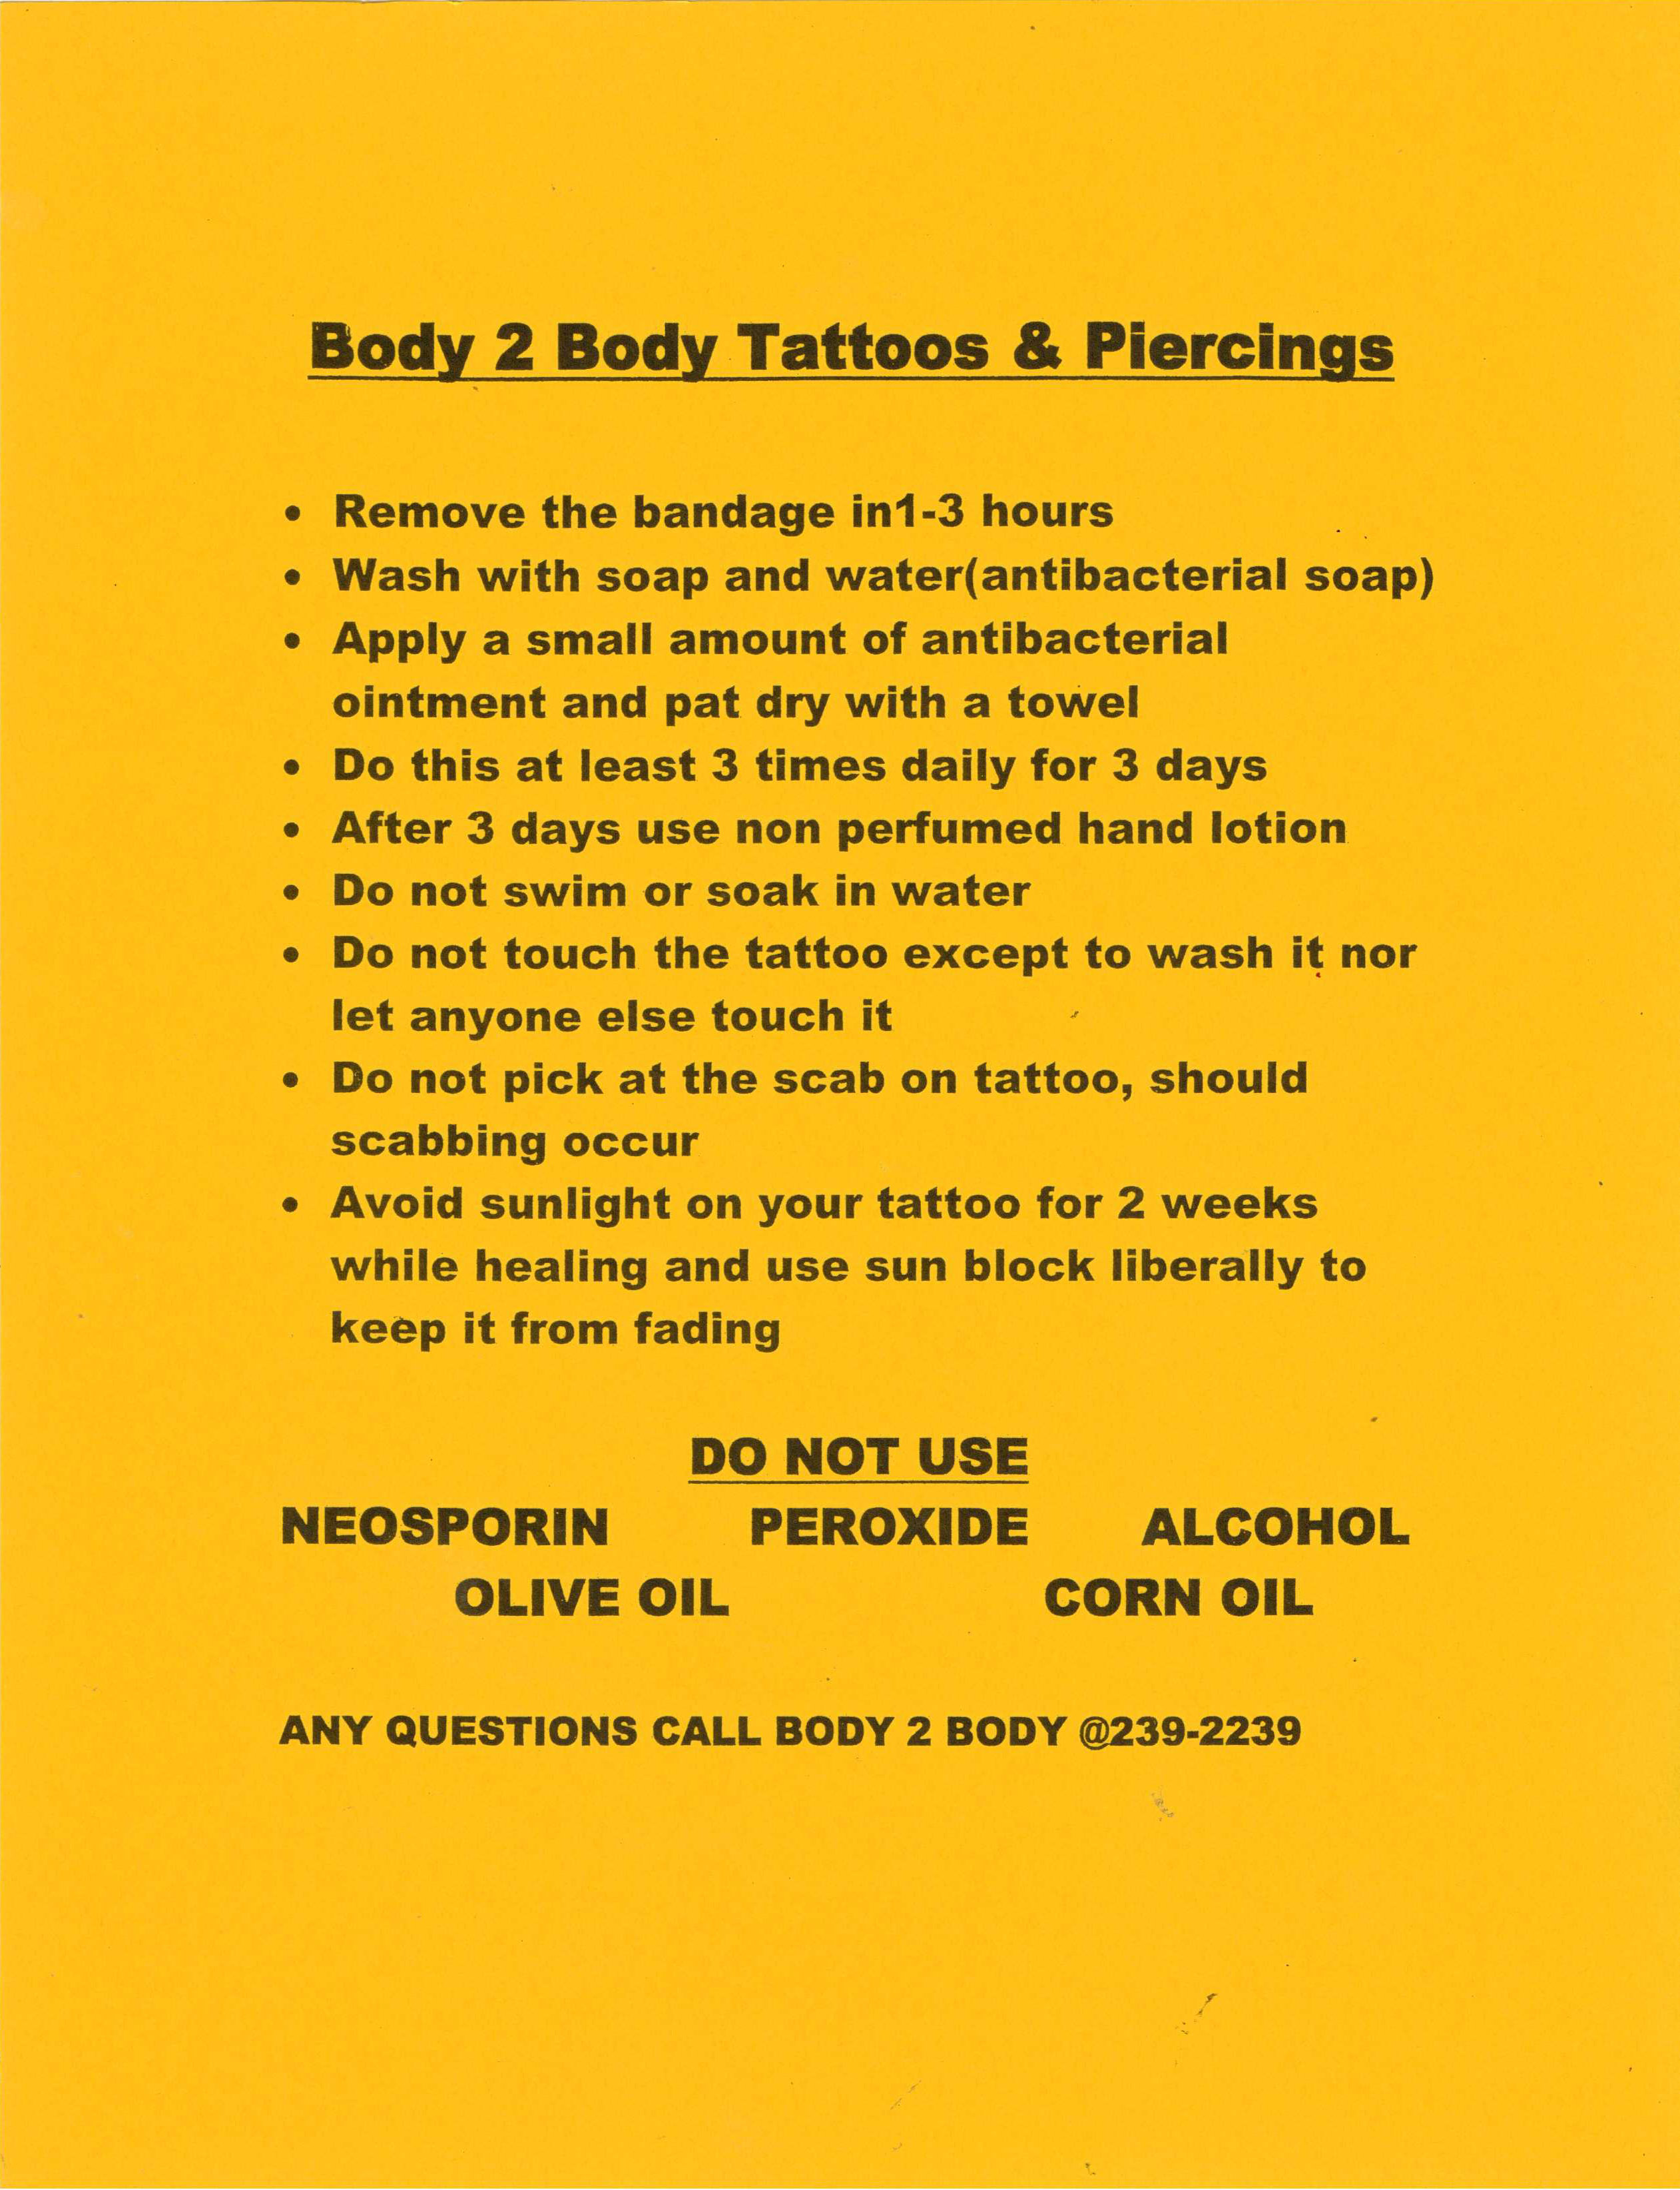 Henna Tattoo Aftercare: View The Products And Services That Body 2 Body Tattoos Of